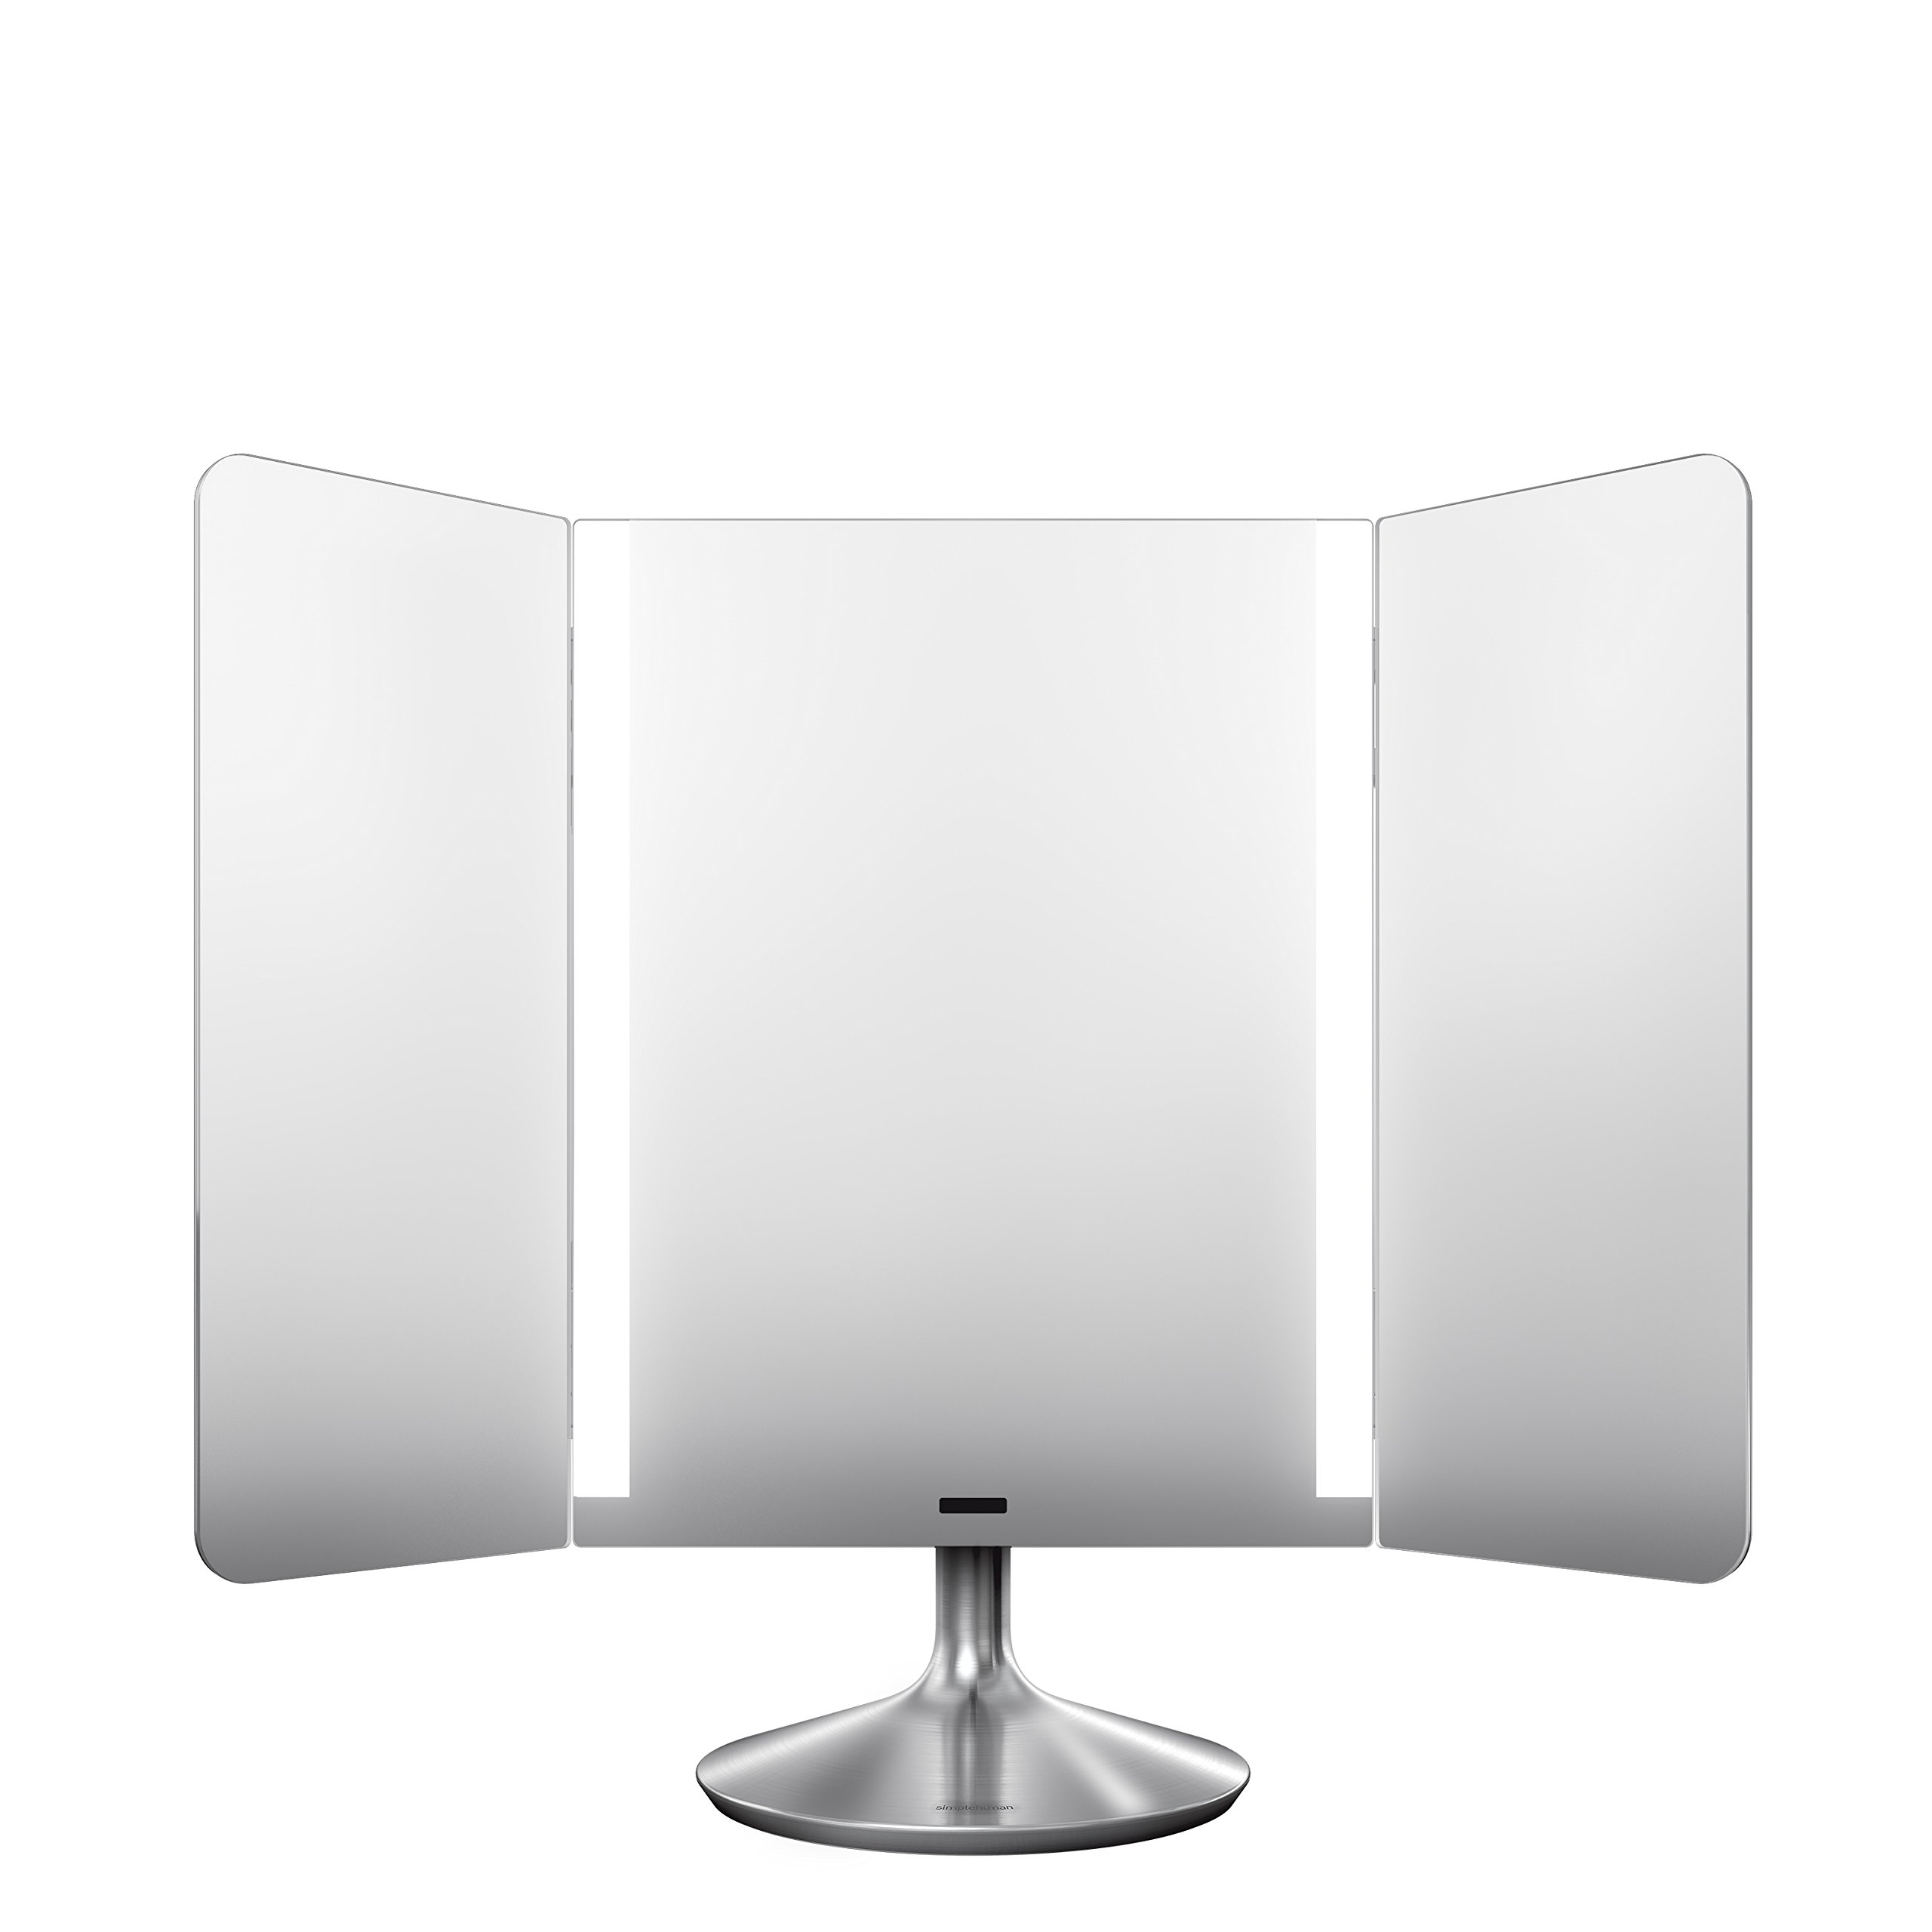 simplehuman Sensor Lighted Makeup Vanity Mirror Pro Wide View, 1x + 10x Dual Magnification, Stainless Steel, Rechargeable And Cordless by simplehuman (Image #4)